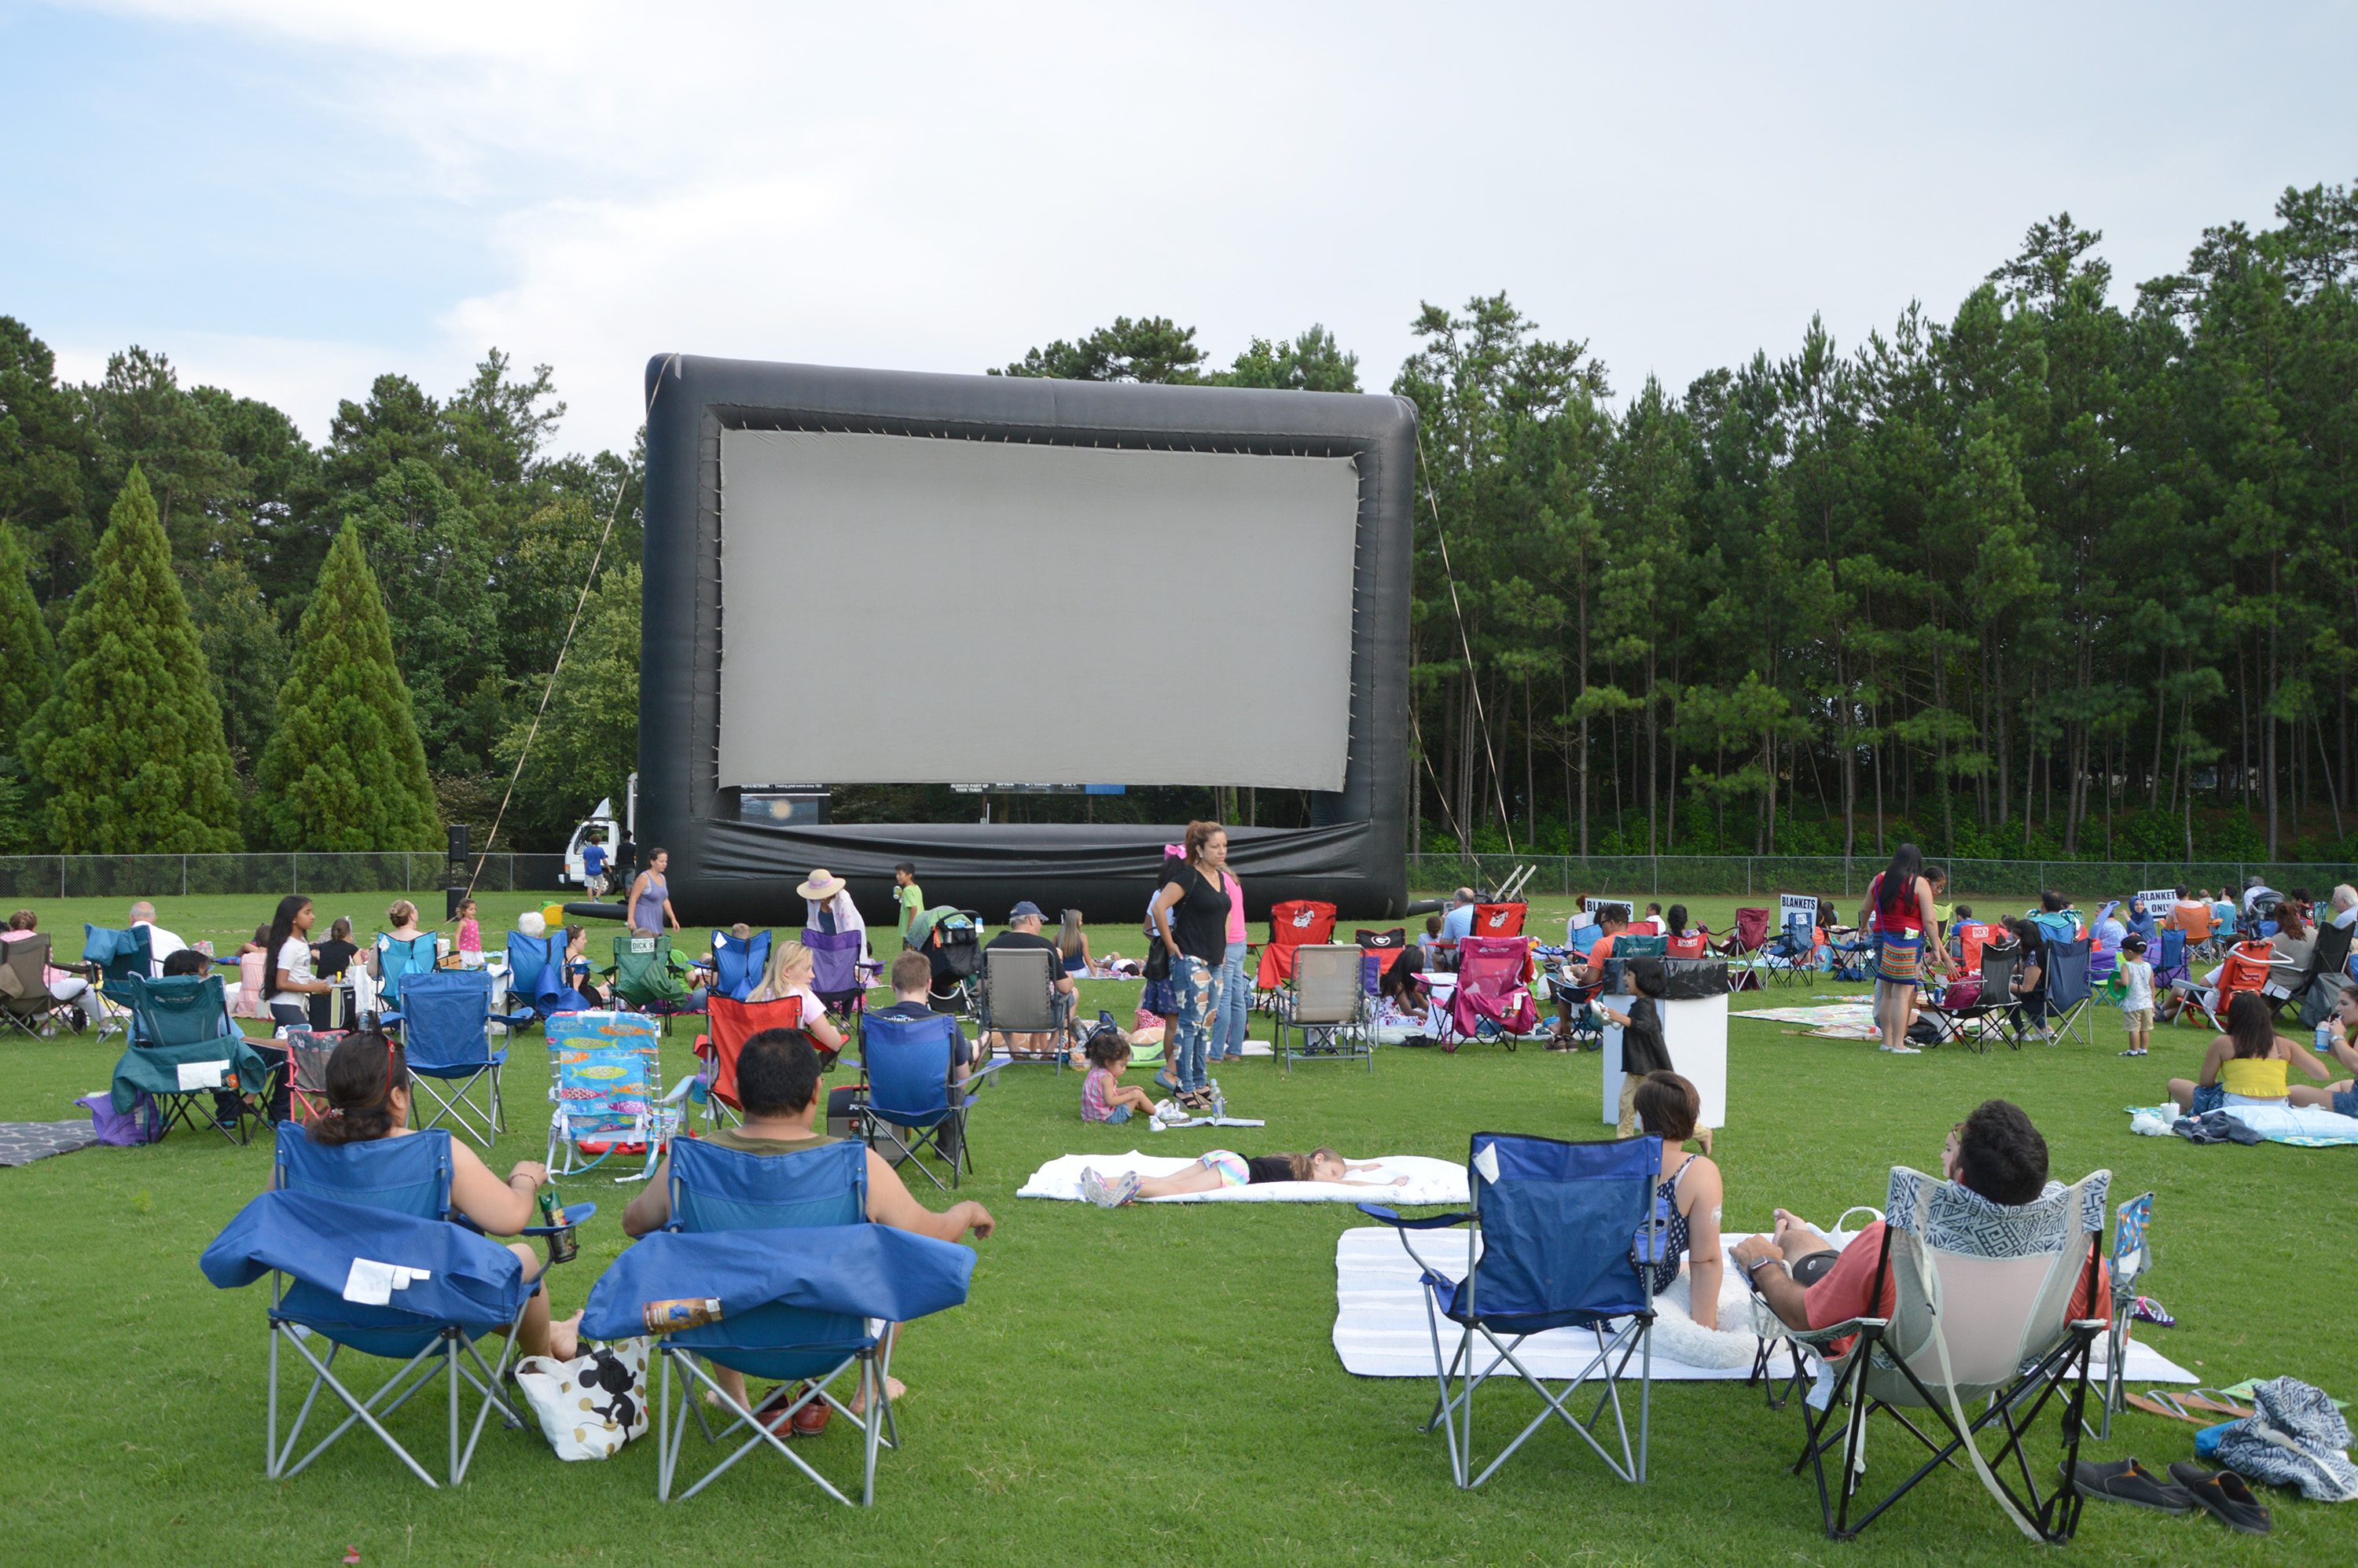 Final summer movie Paddington 2 at Newtown Park Aug. 11